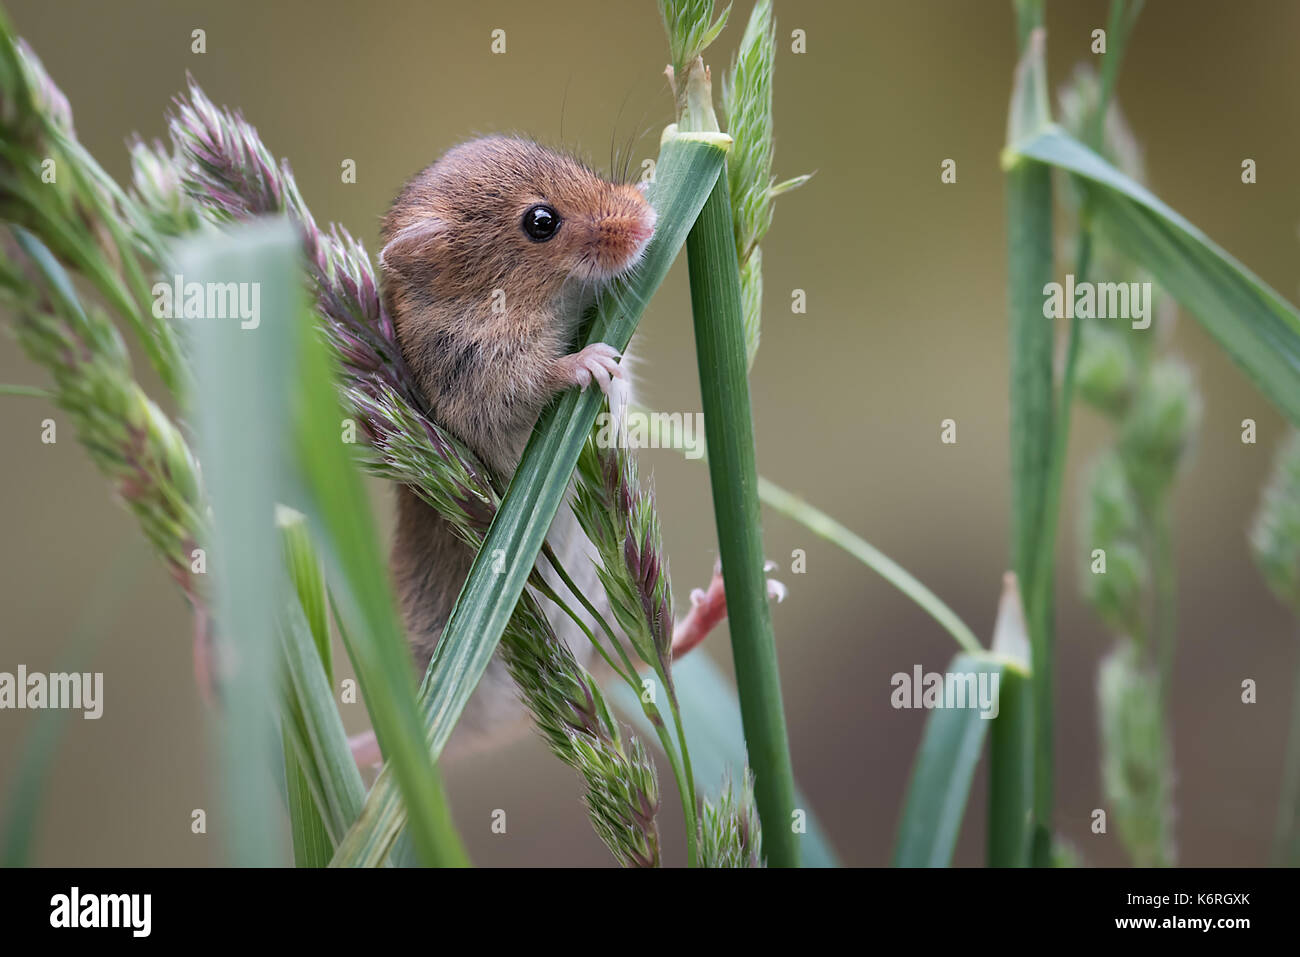 A close up of a harvest mouse climbing up blades of grass and looking inquisitively - Stock Image